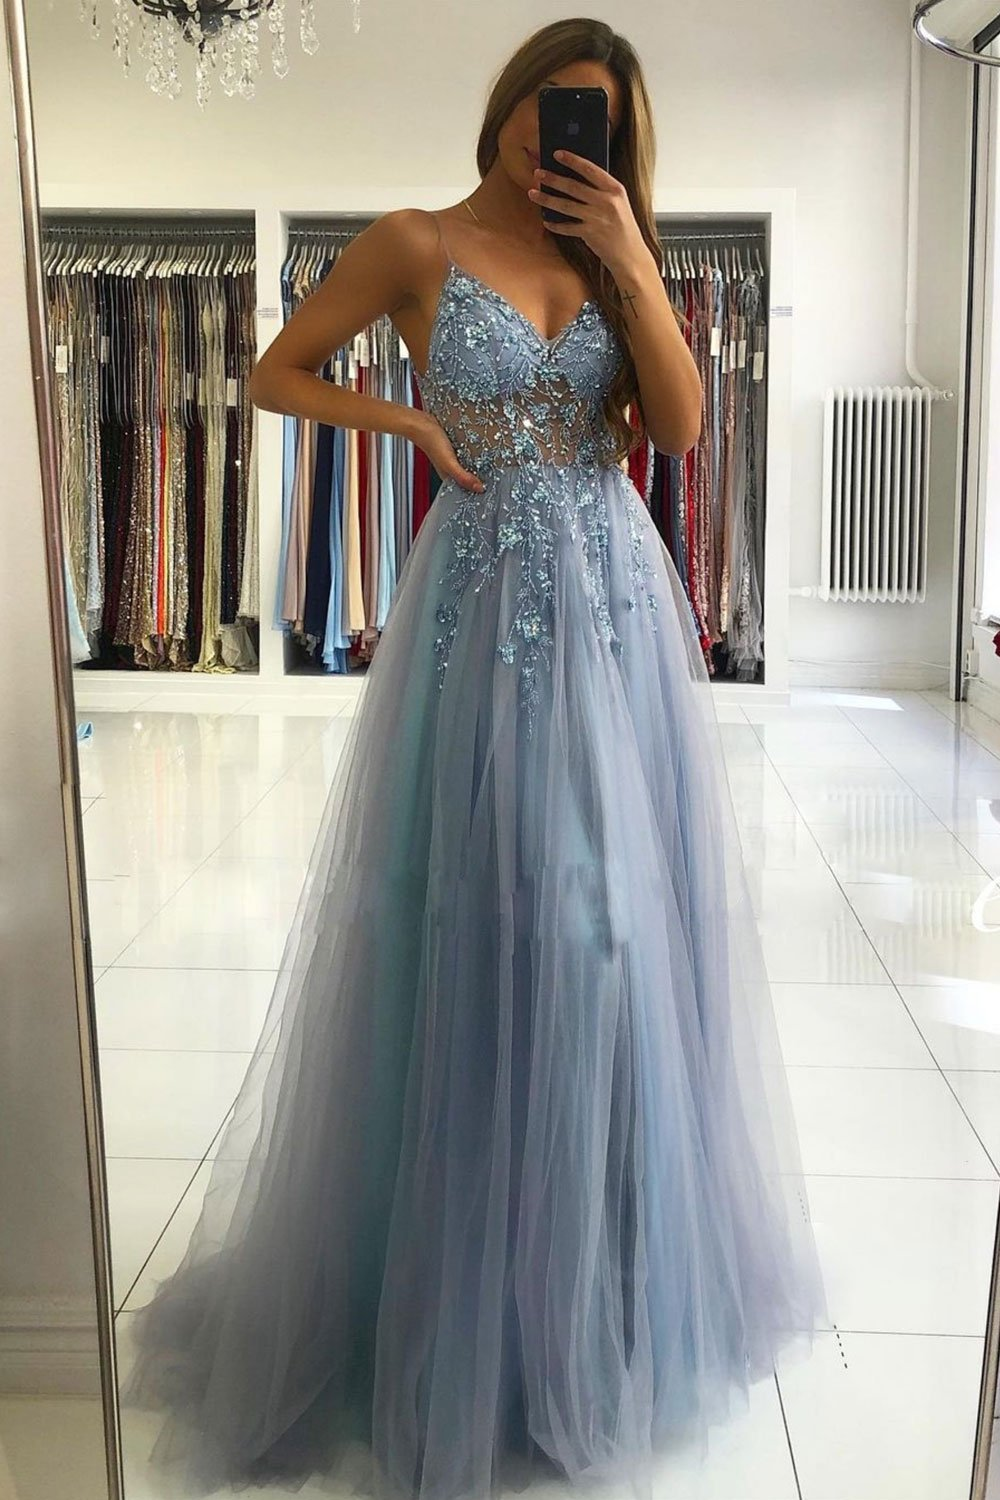 2021 Blue Tulle Spaghetti Straps Beaded Long Prom Dress, Evening Dresses